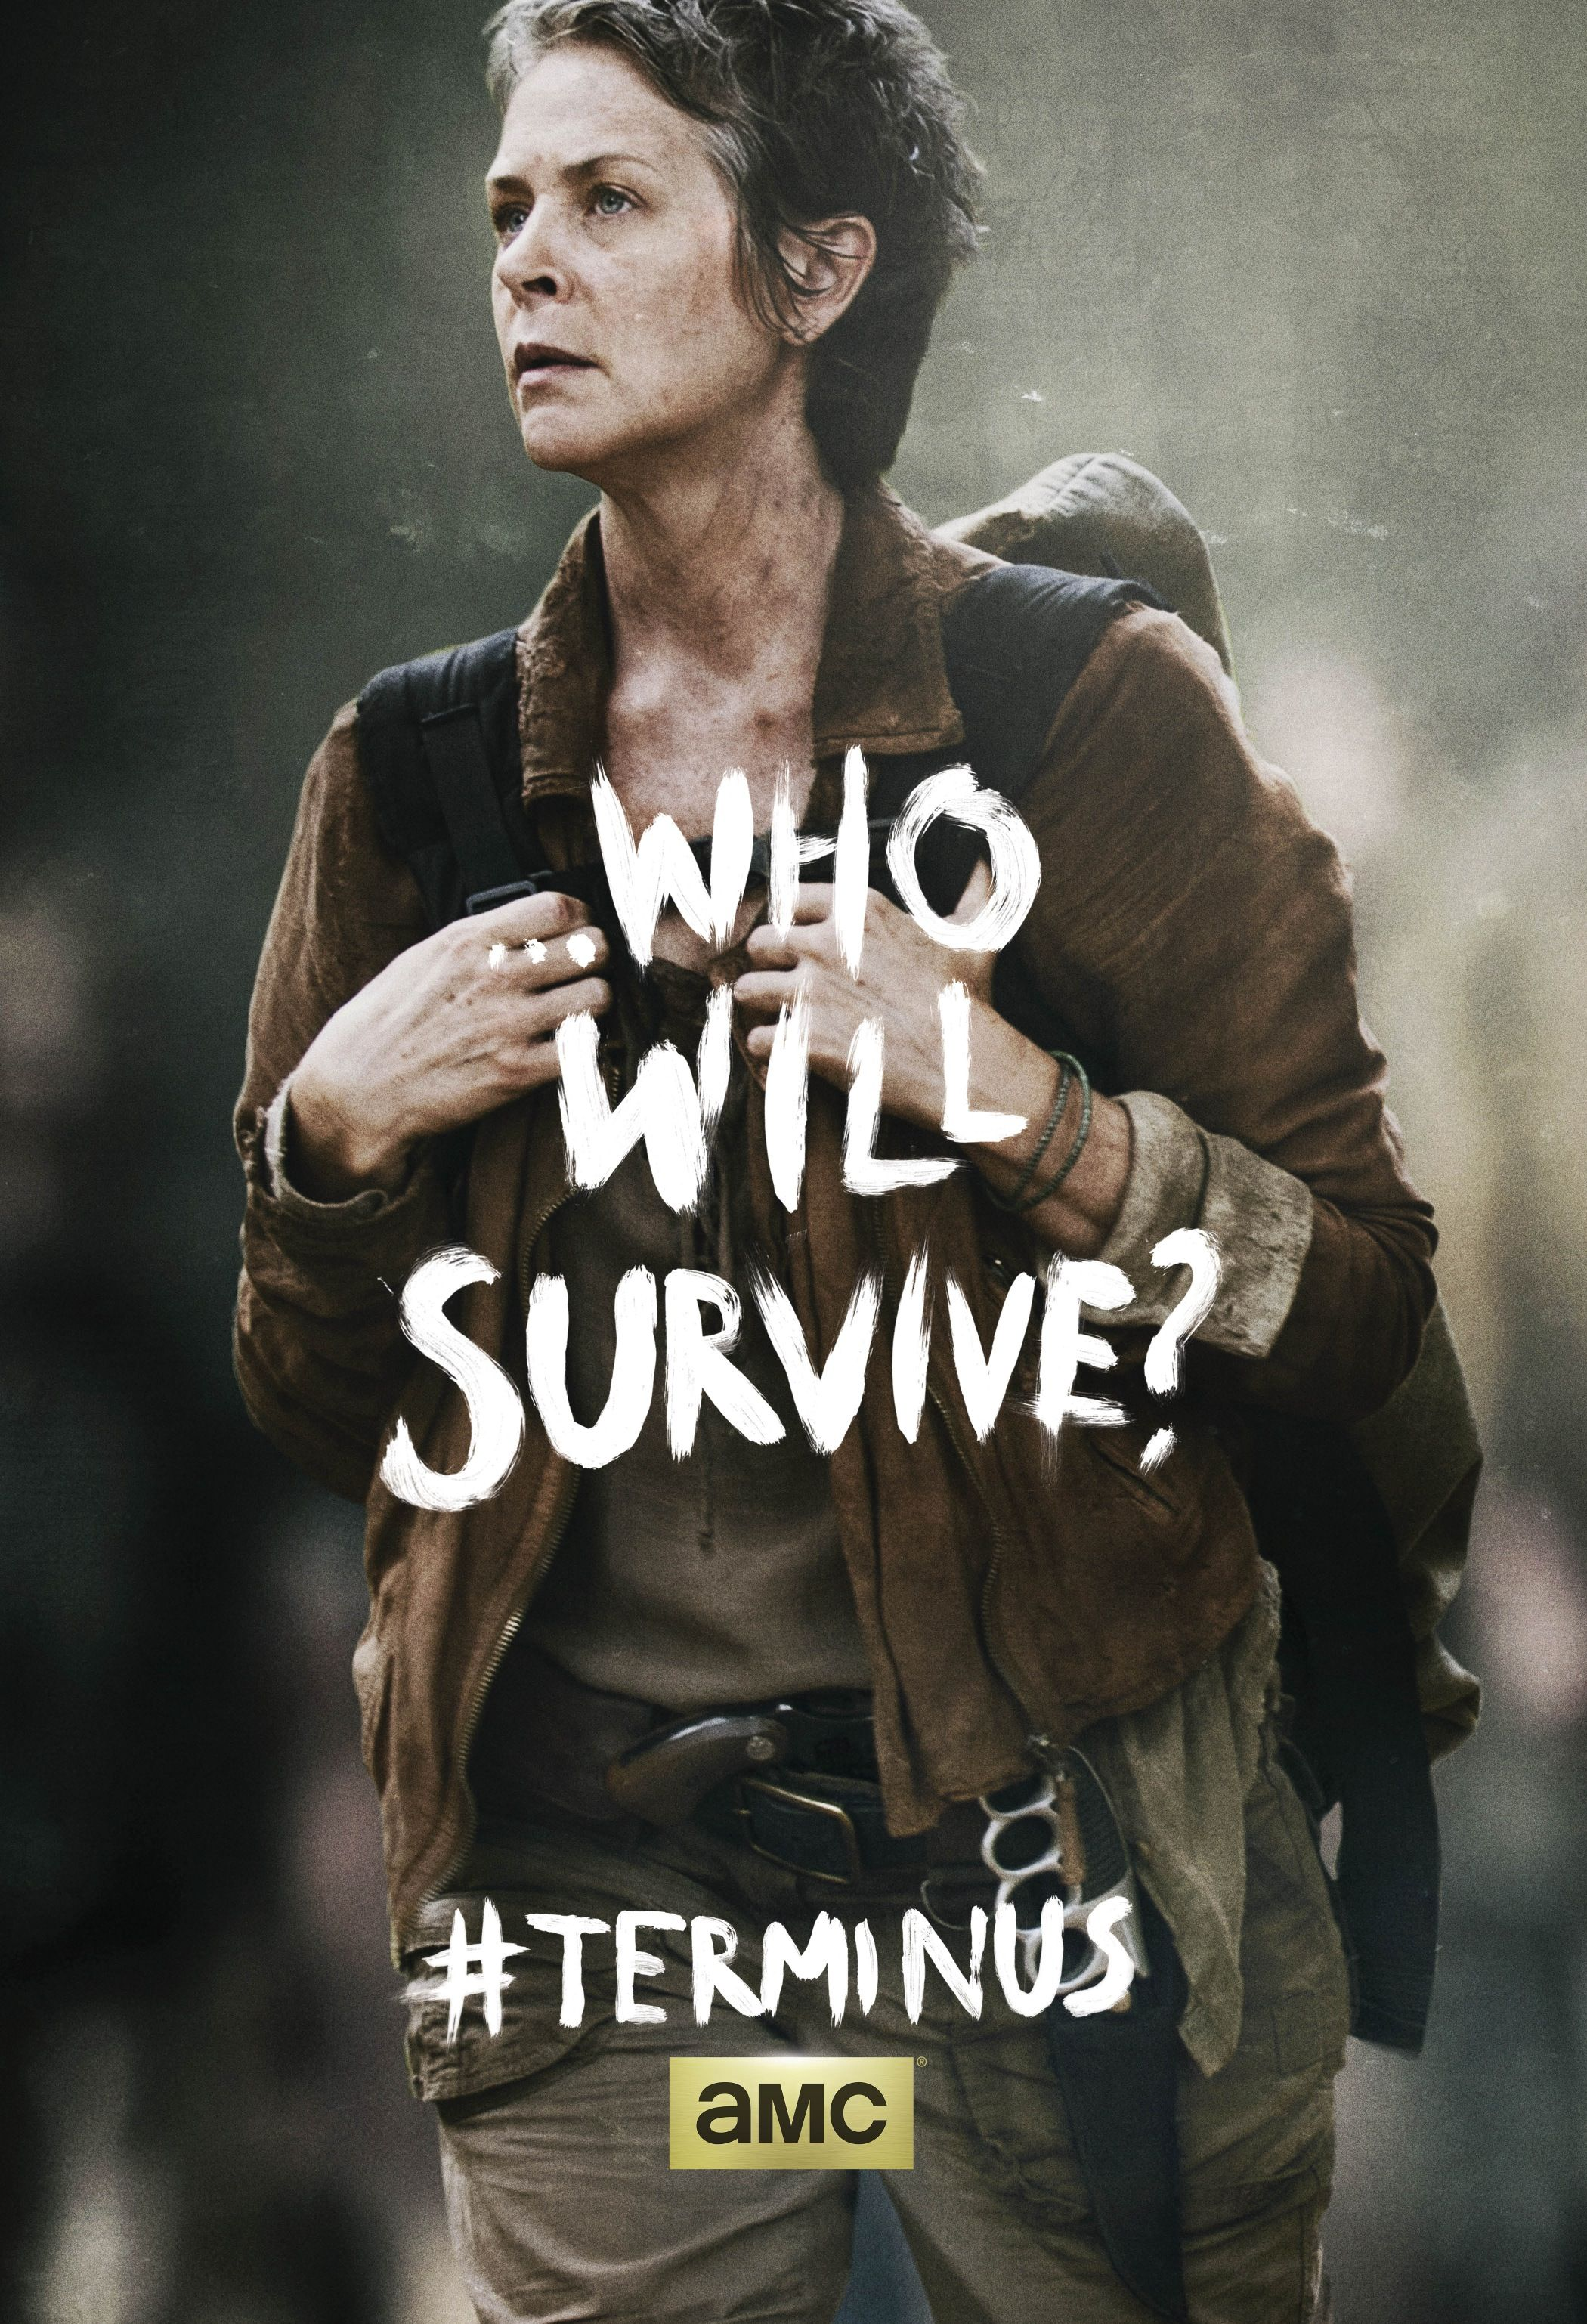 The latest poster released for the walking dead season 4 finale the latest poster released for the walking dead season 4 finale features beth greene voltagebd Choice Image